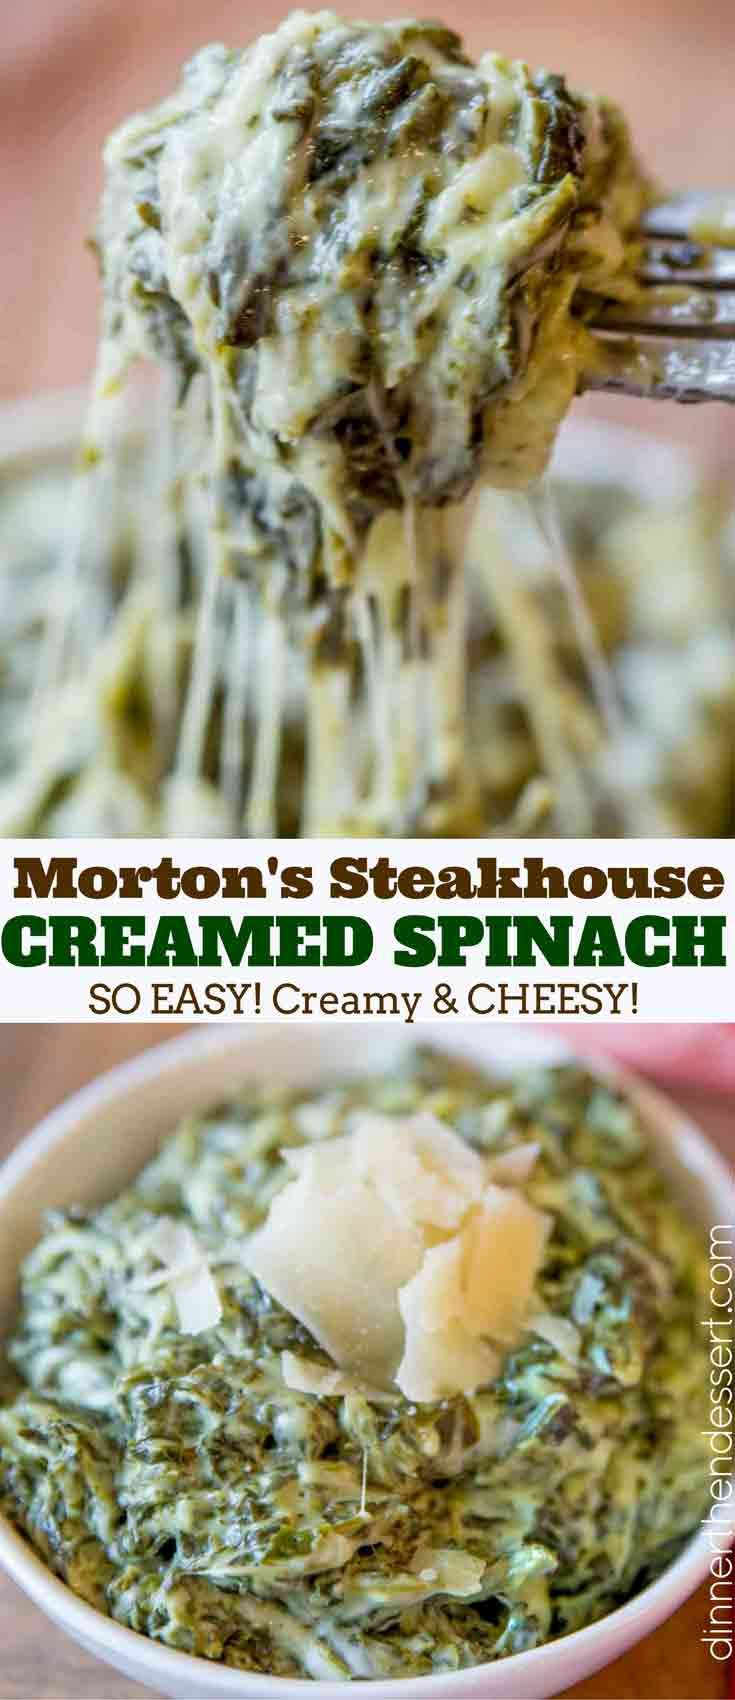 Creamy, Rich Classic Steakhouse Creamed Spinach Recipe That Takes Just A Few Minutes And Is The Perfect Side For A Holiday Roast Or Prime Rib. #creamedspinach #holidays #sidedish #spinach #cheesy